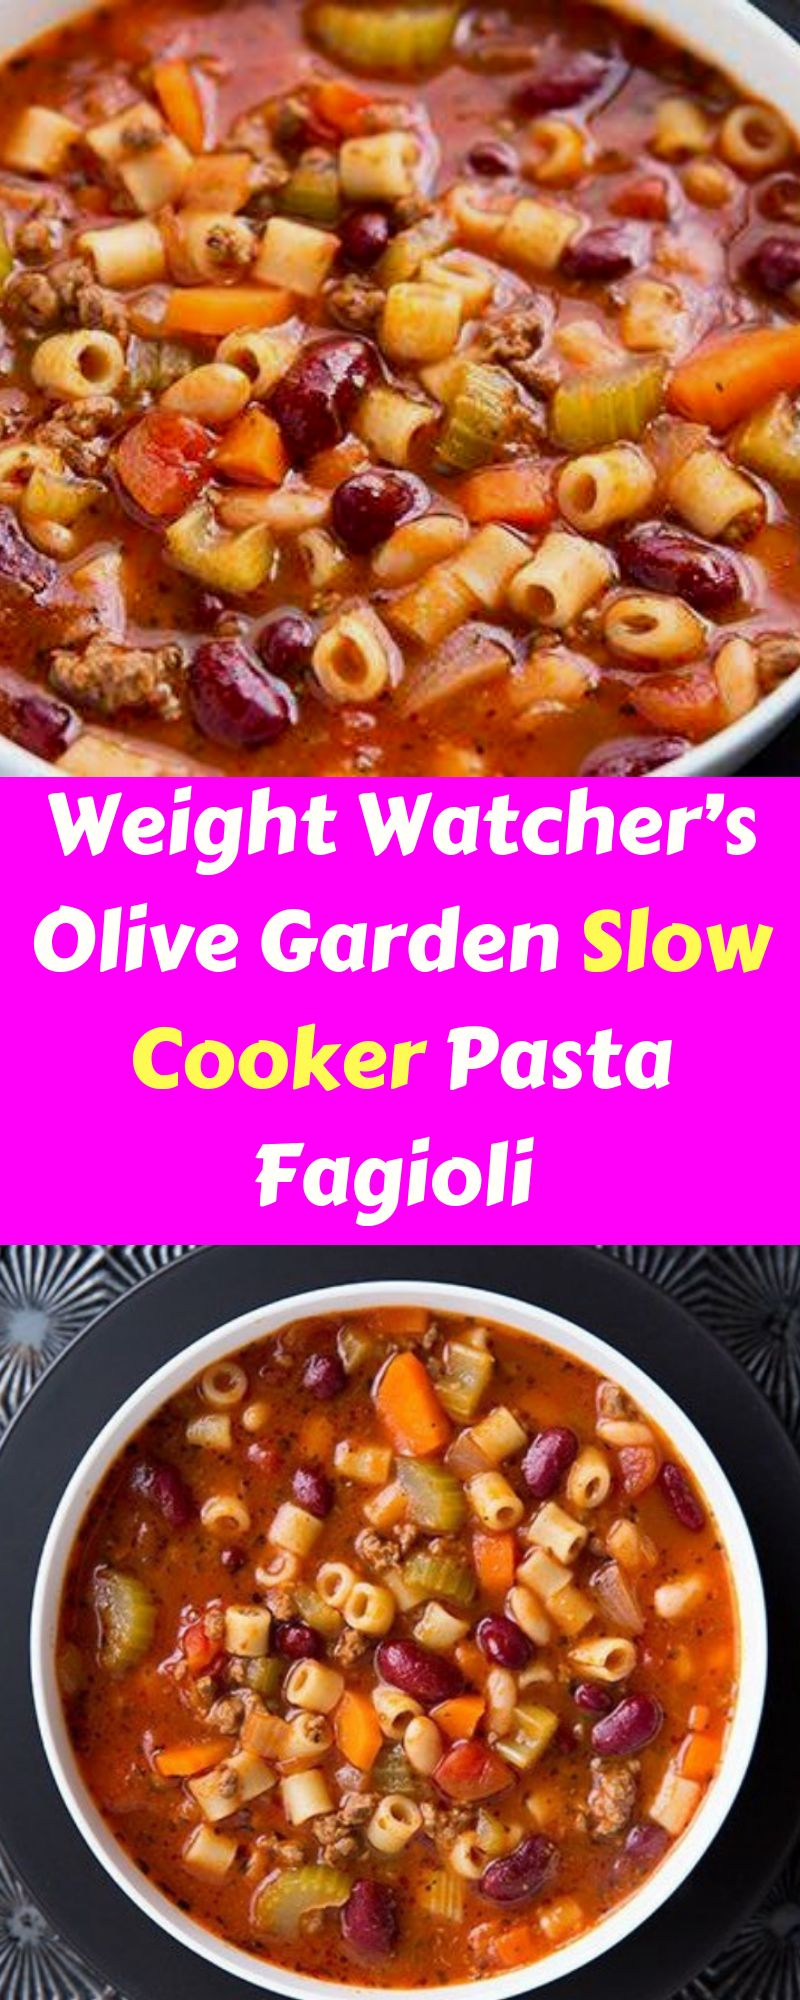 Our Family S Favorite Weight Watcher S Olive Garden Slow Cooker Pasta Fagioli Recipe Not Only